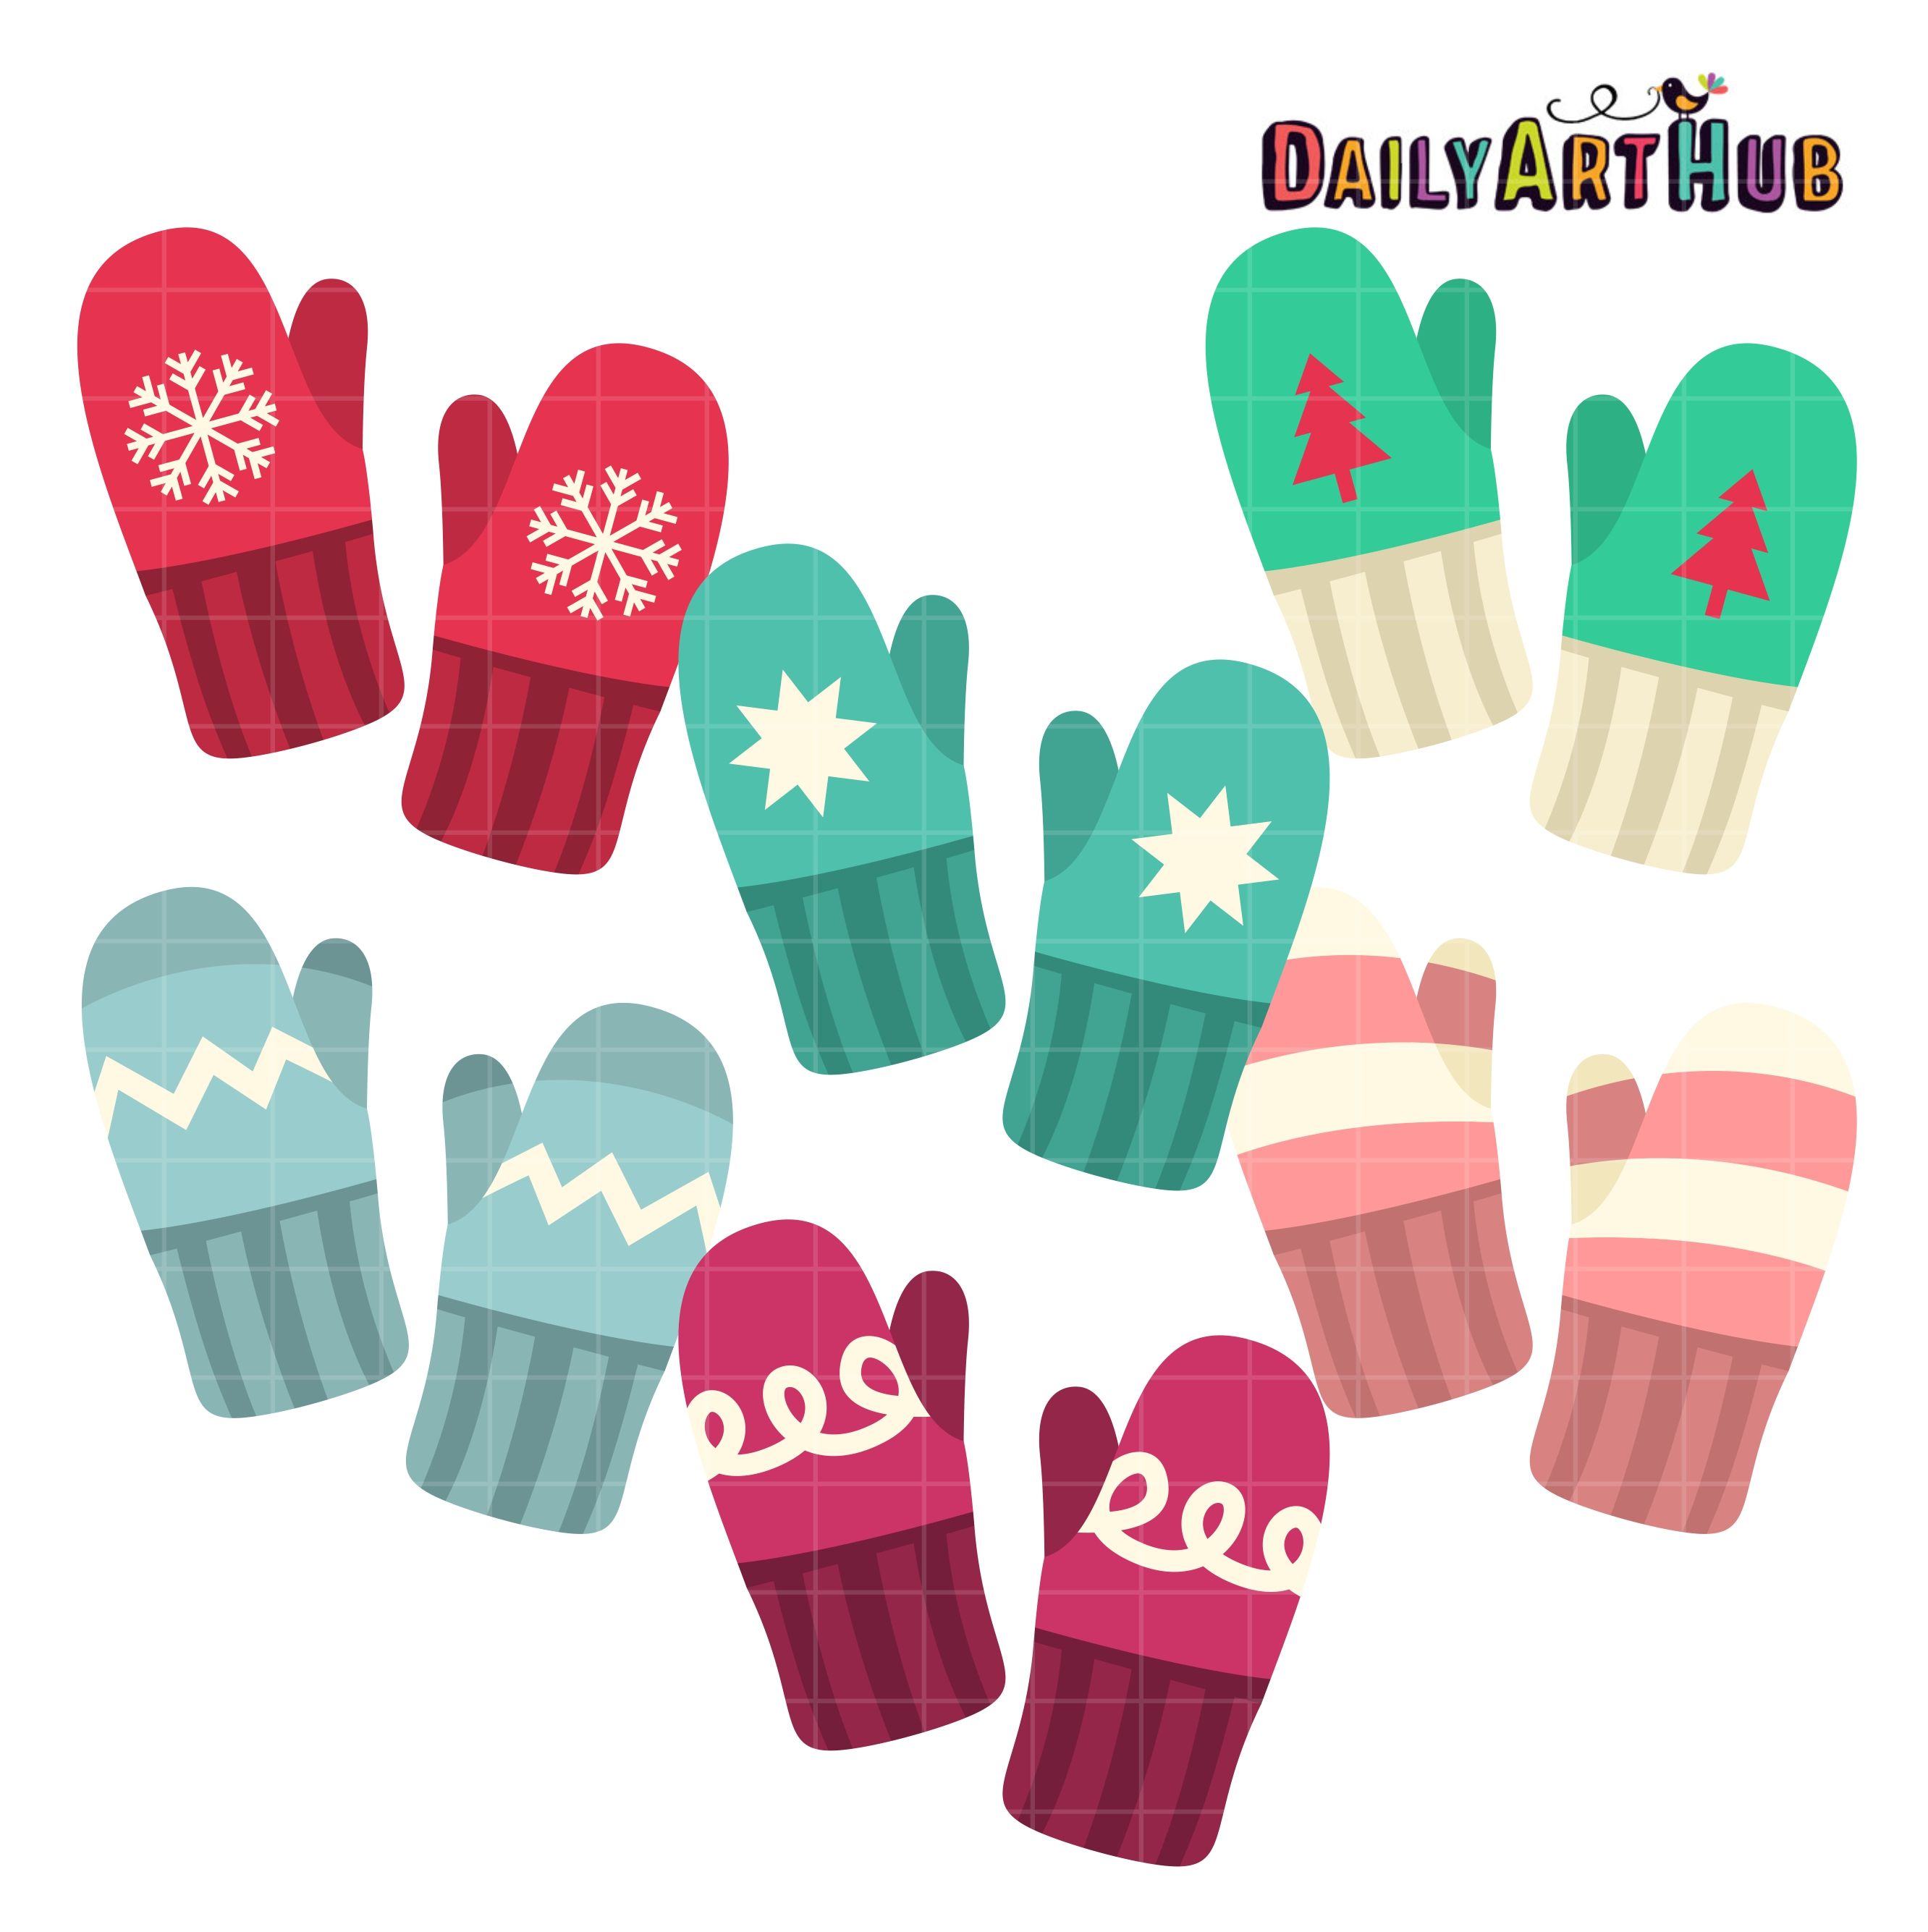 575 Mittens free clipart.